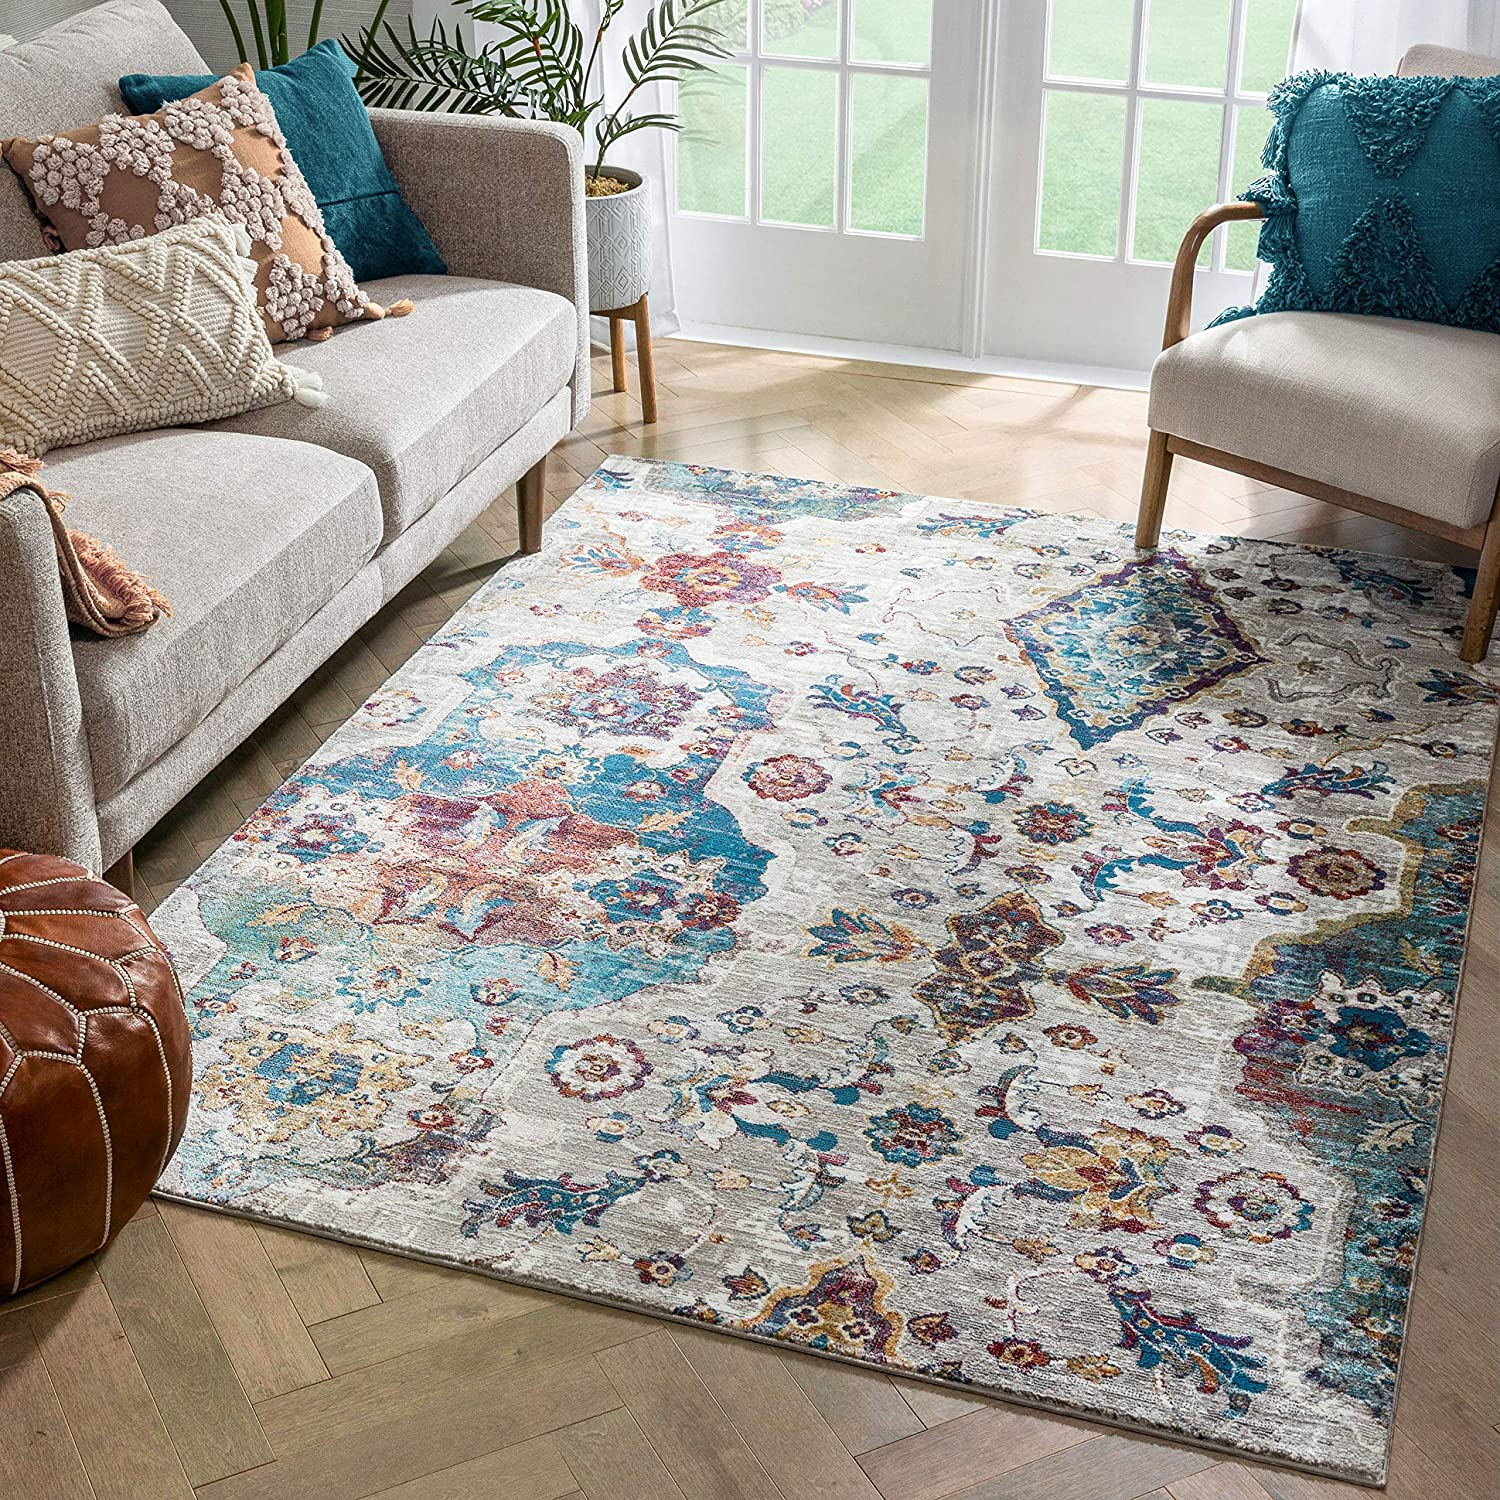 Well Woven Max 65% OFF Bleecker St Paloma Ivory 5'3